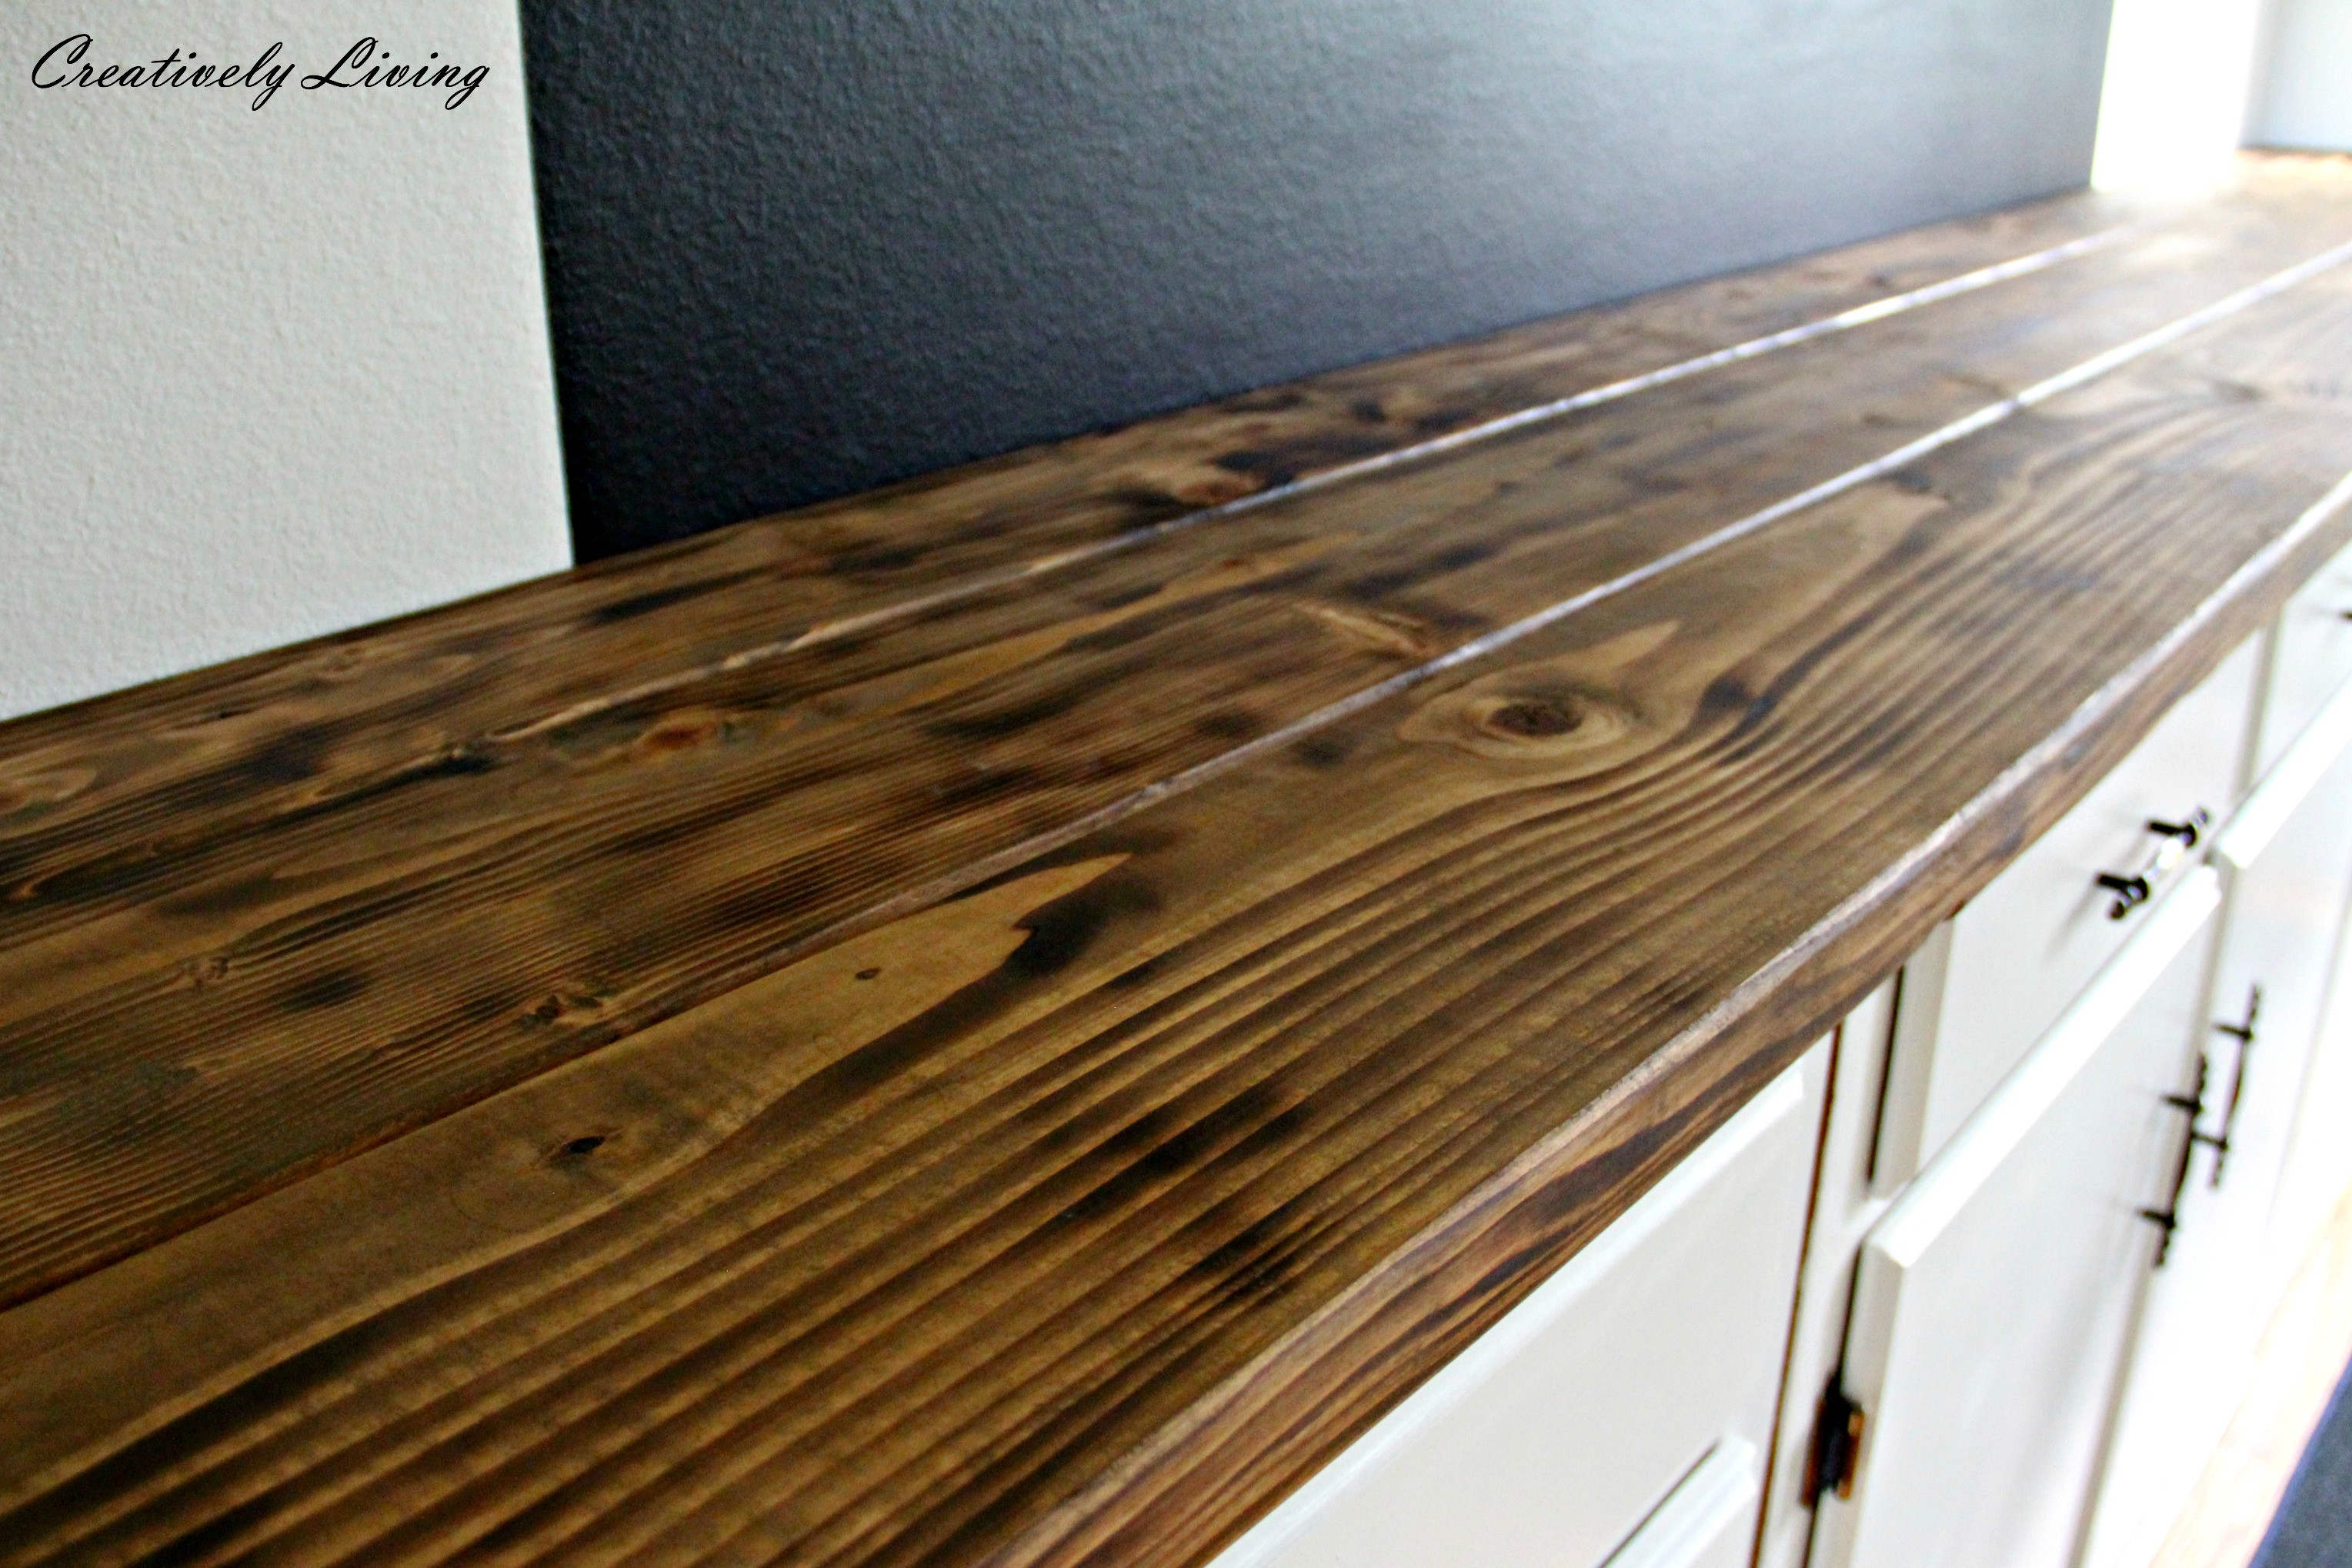 Best ideas about DIY Wooden Countertops . Save or Pin Torched DIY Rustic Wood Counter Top for Under $50 by Now.